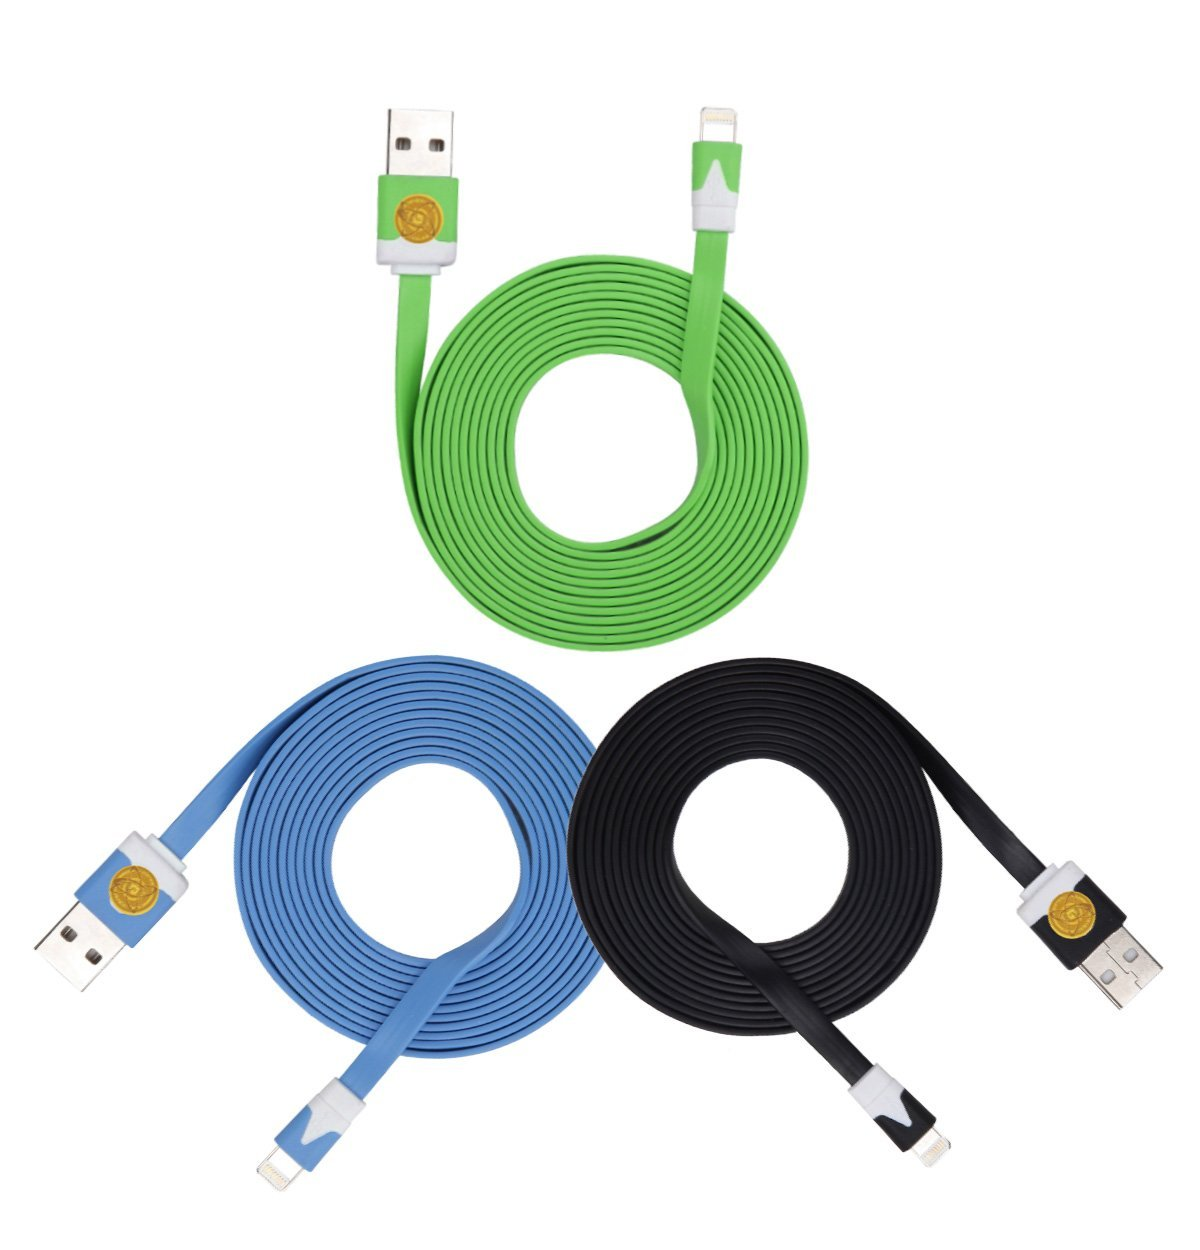 2M Heavy Duty Flat Noodle Lightning USB Cable for Apple iPhone 6,6S -Blu grn blk